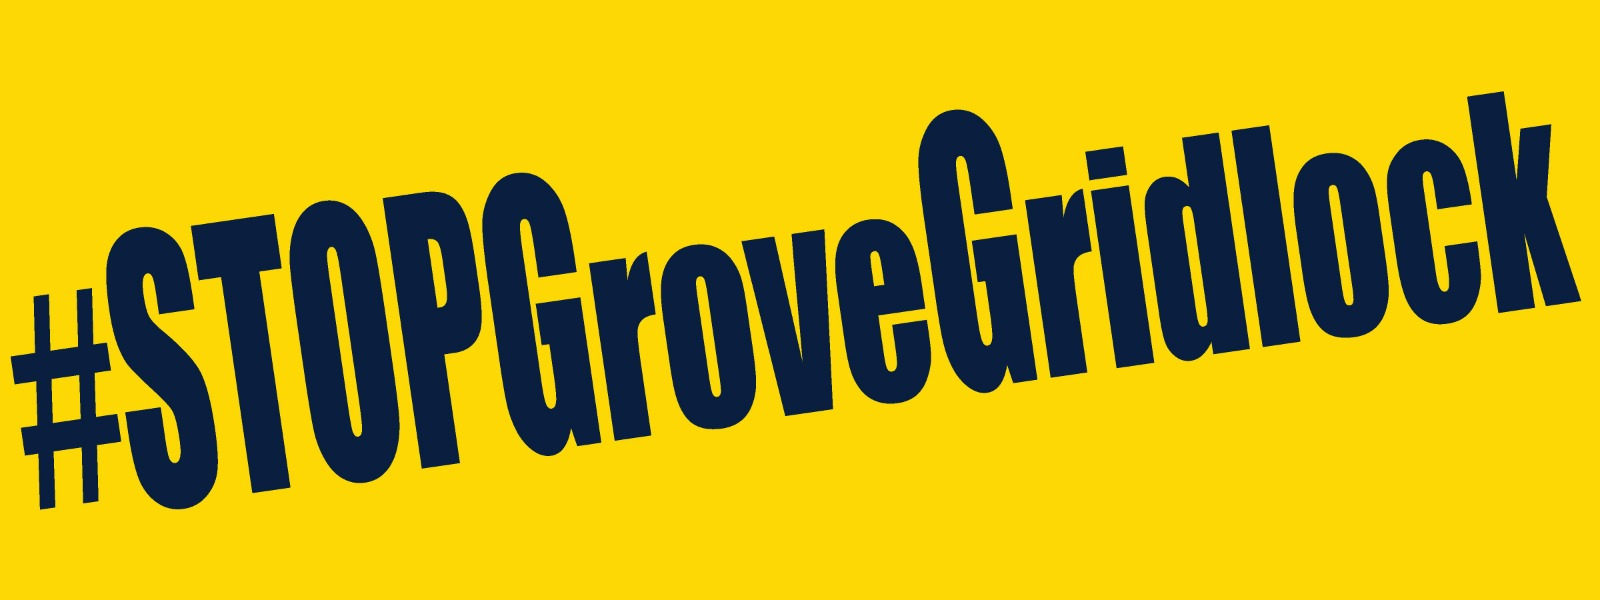 STOP Grove Gridlock Campaign